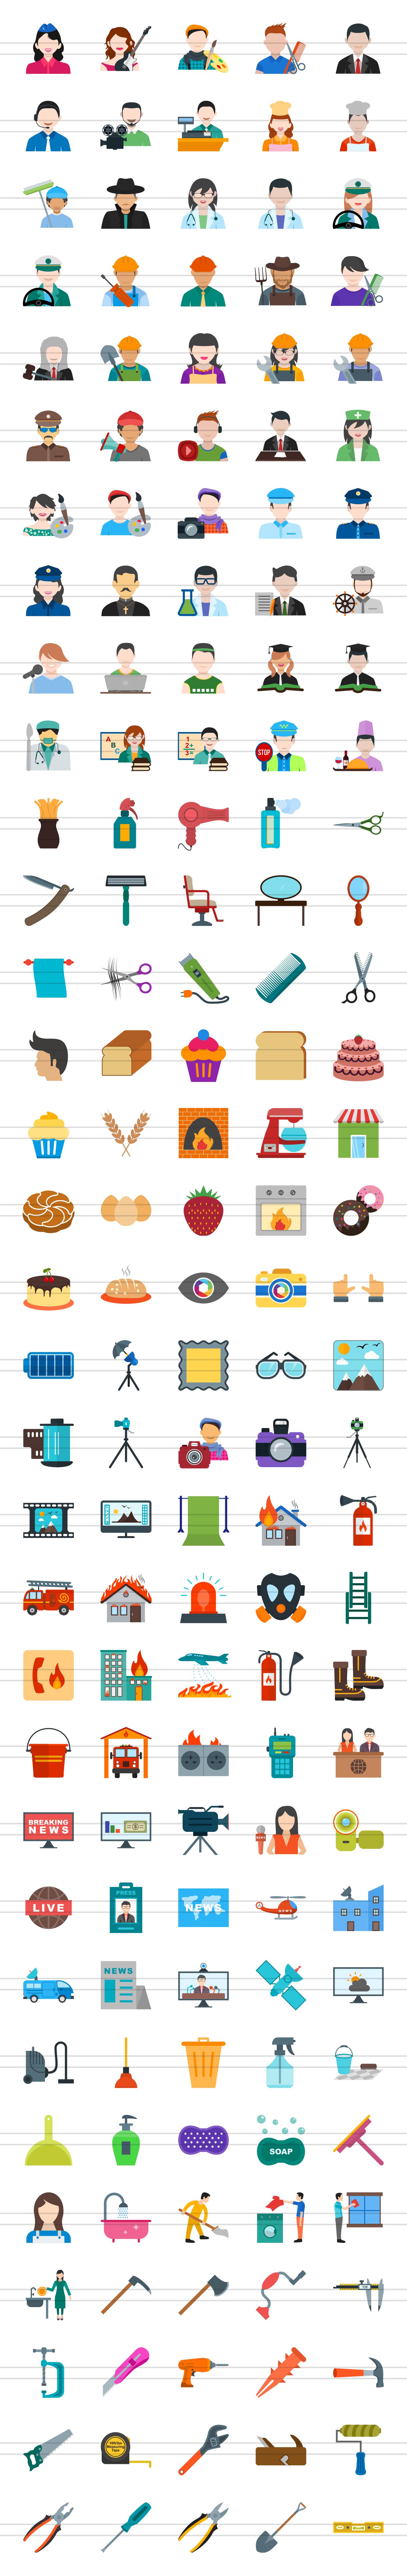 166 Professionals & their tools Flat Icons example image 2